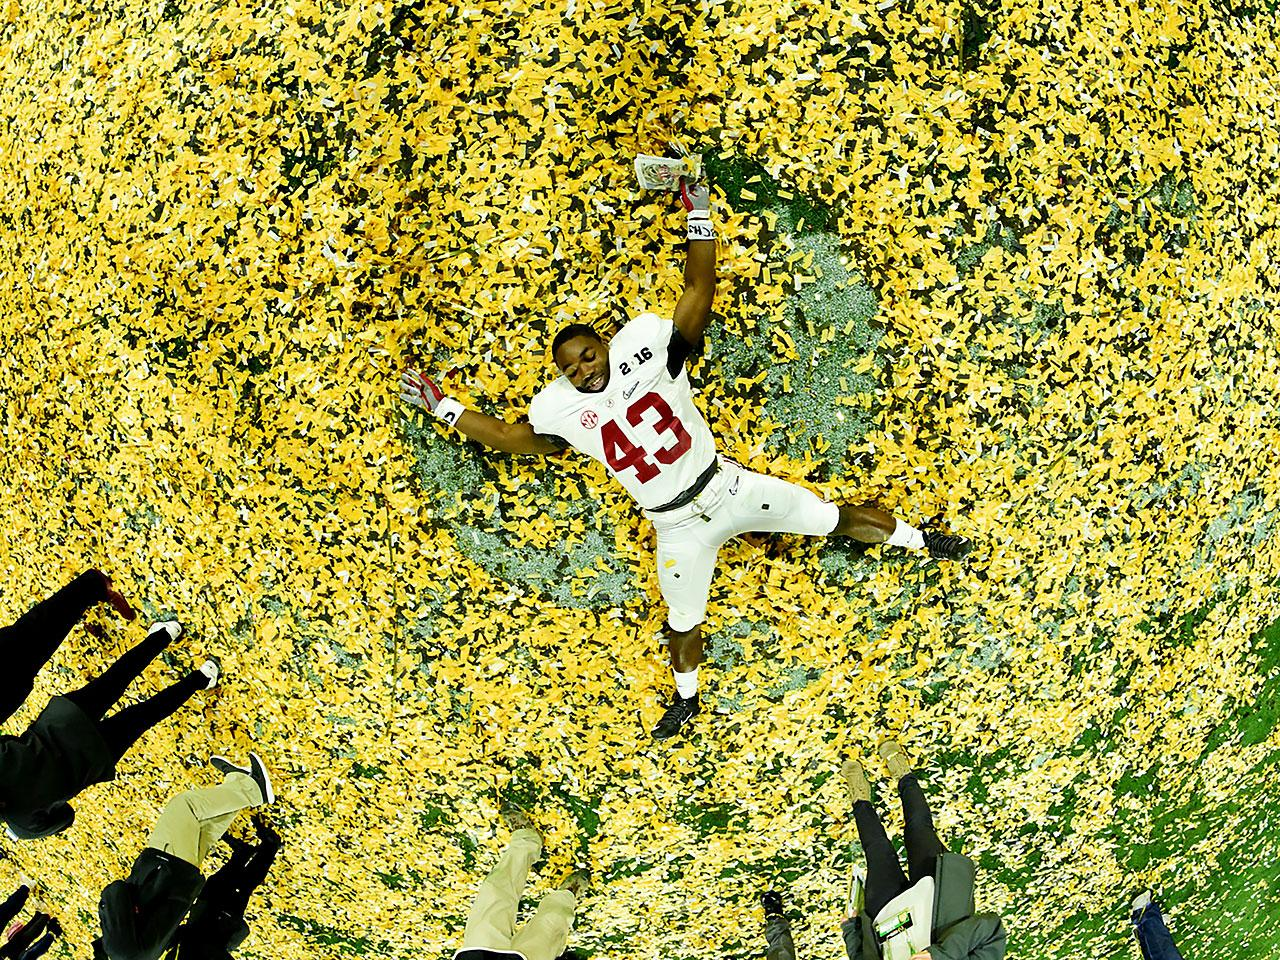 Crimson Tide running back Lawrence Erekosima works on a confetti angel after Alabama's win over Clemson in the 2016 national title game.